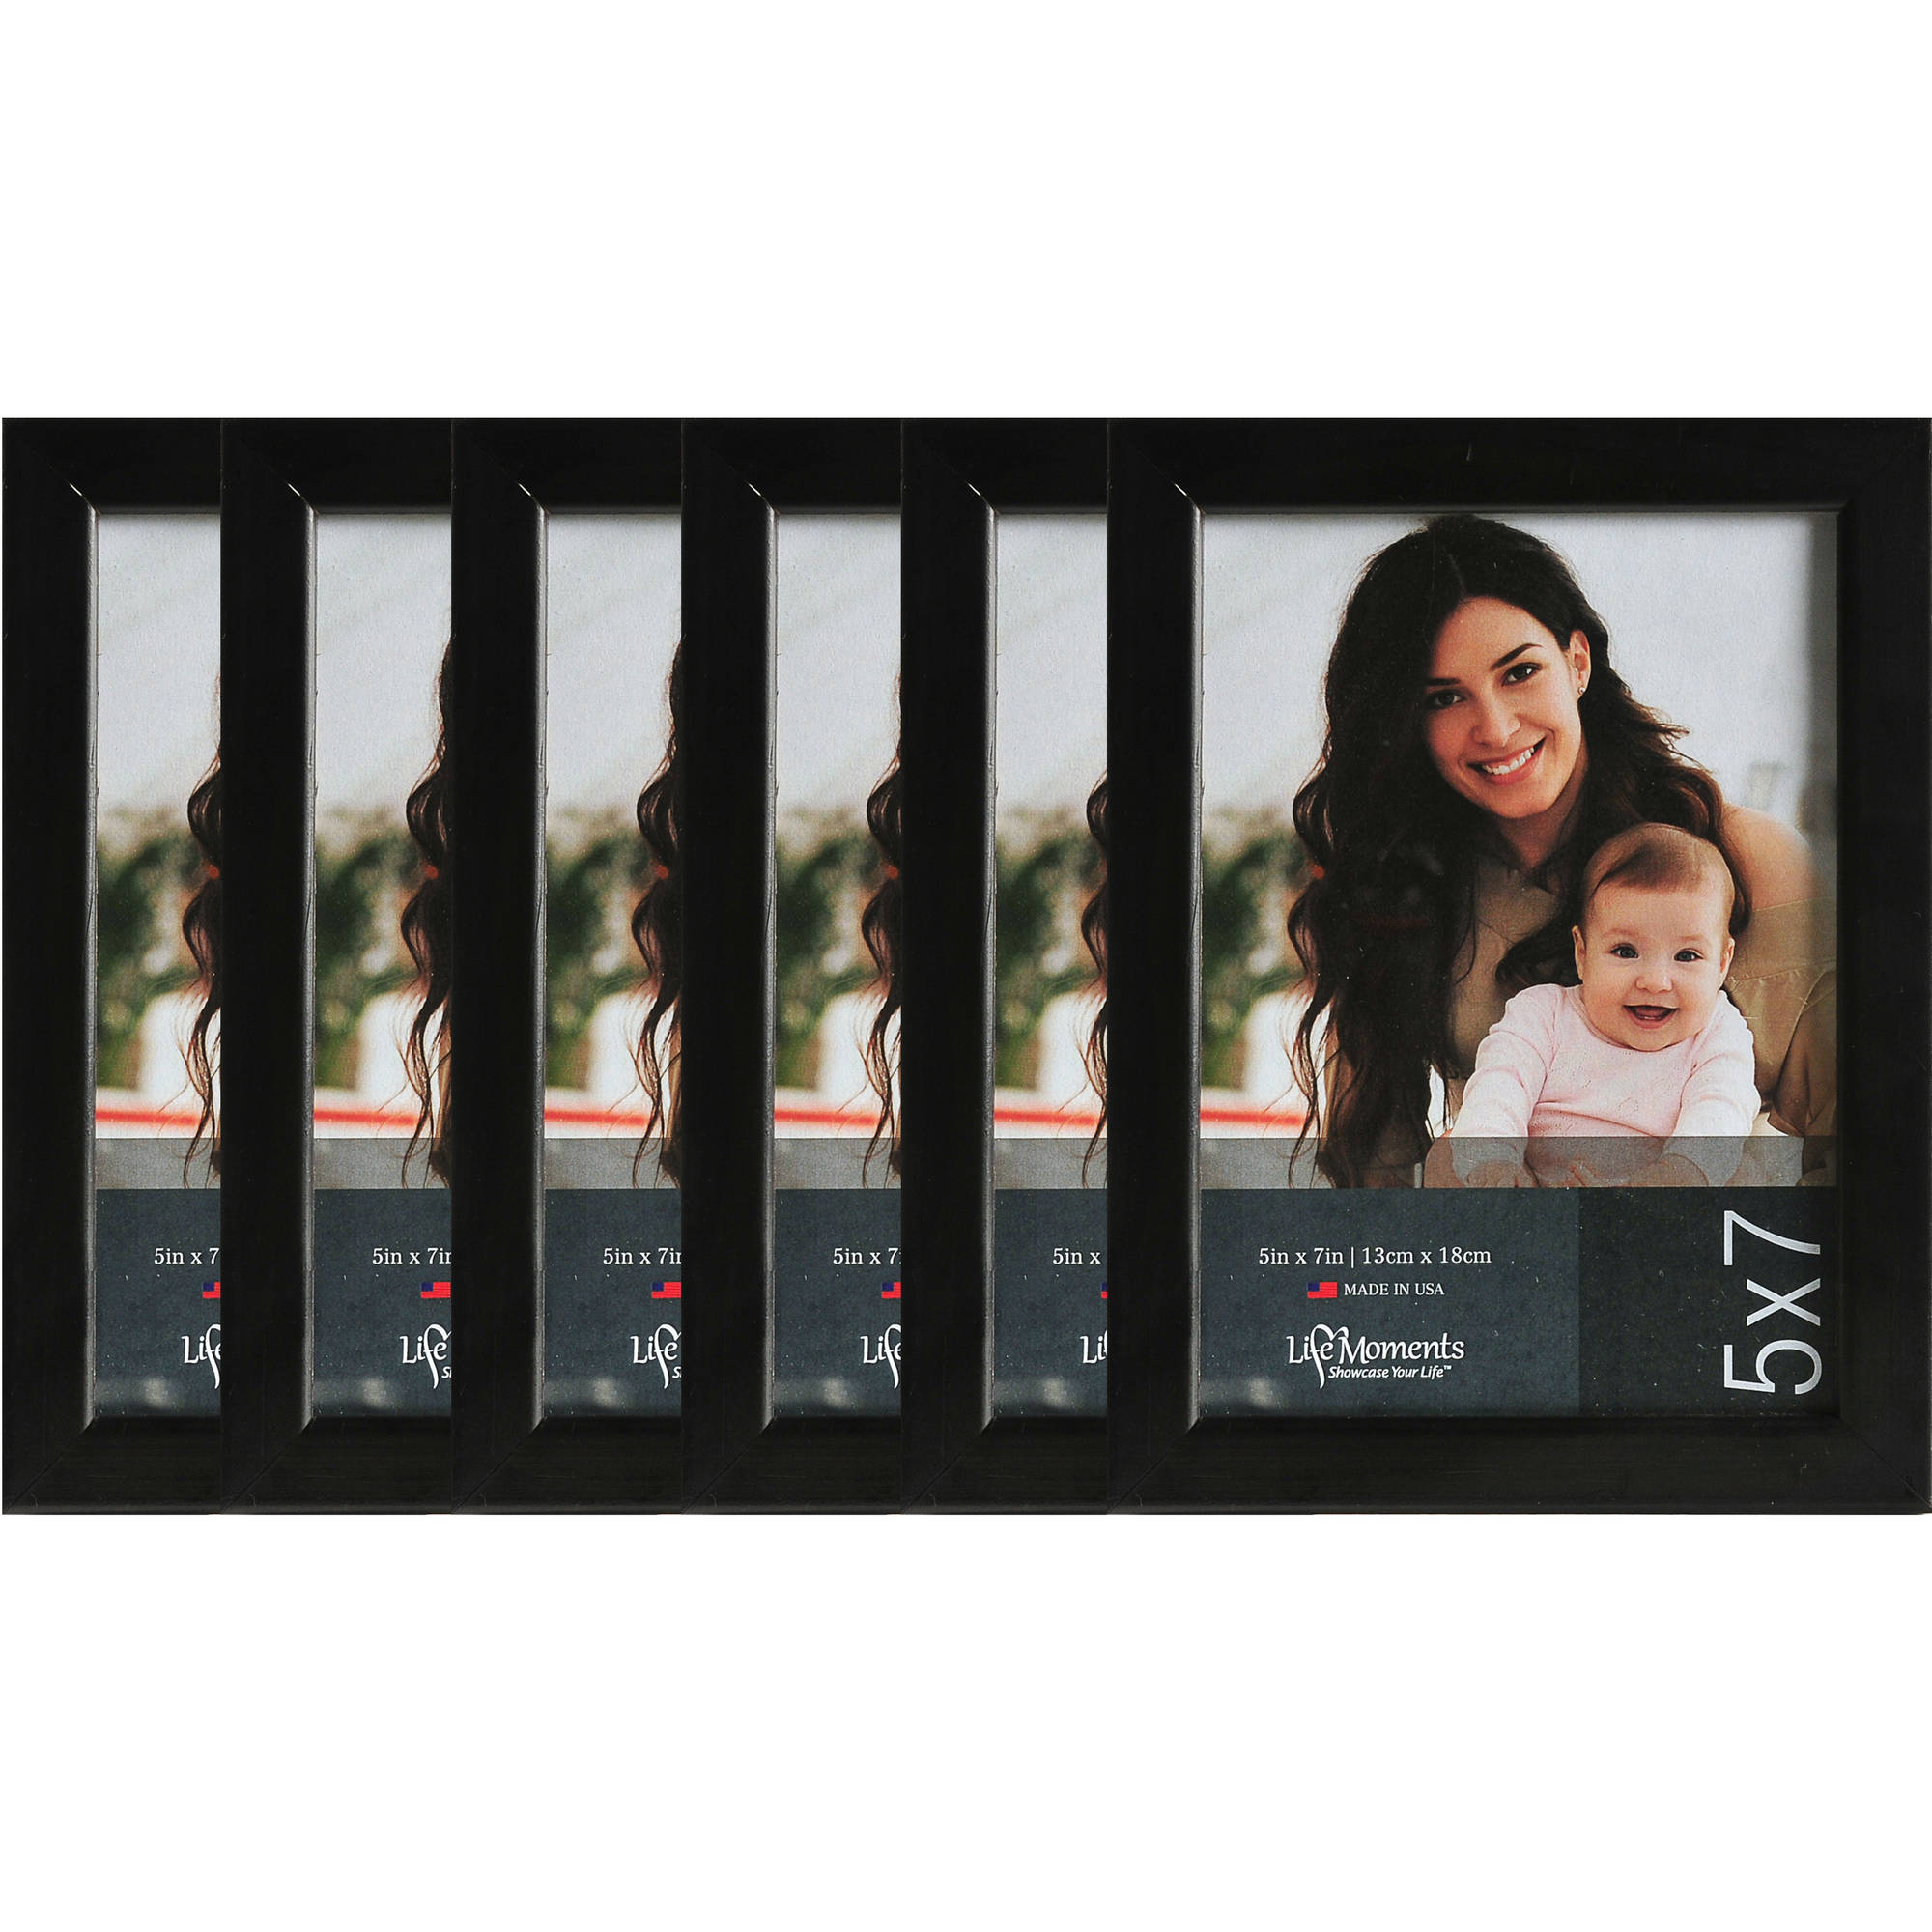 5x7 Black Wood Desk Picture Frames, Case of 6 by Pinnacle Frames and Accents